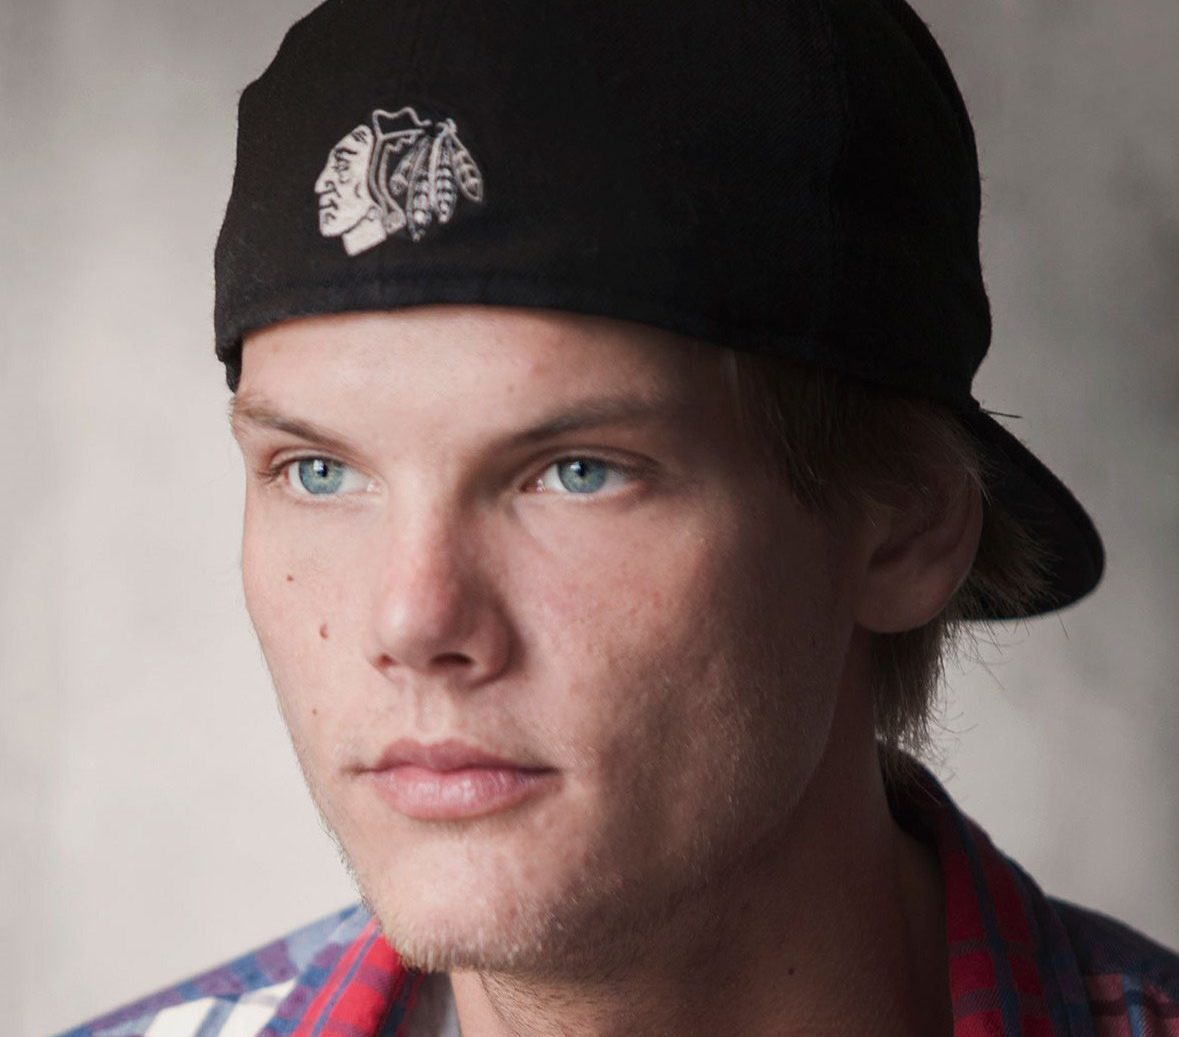 REMEMBERING AVICII WITH THESE TEN EPIC SONGS